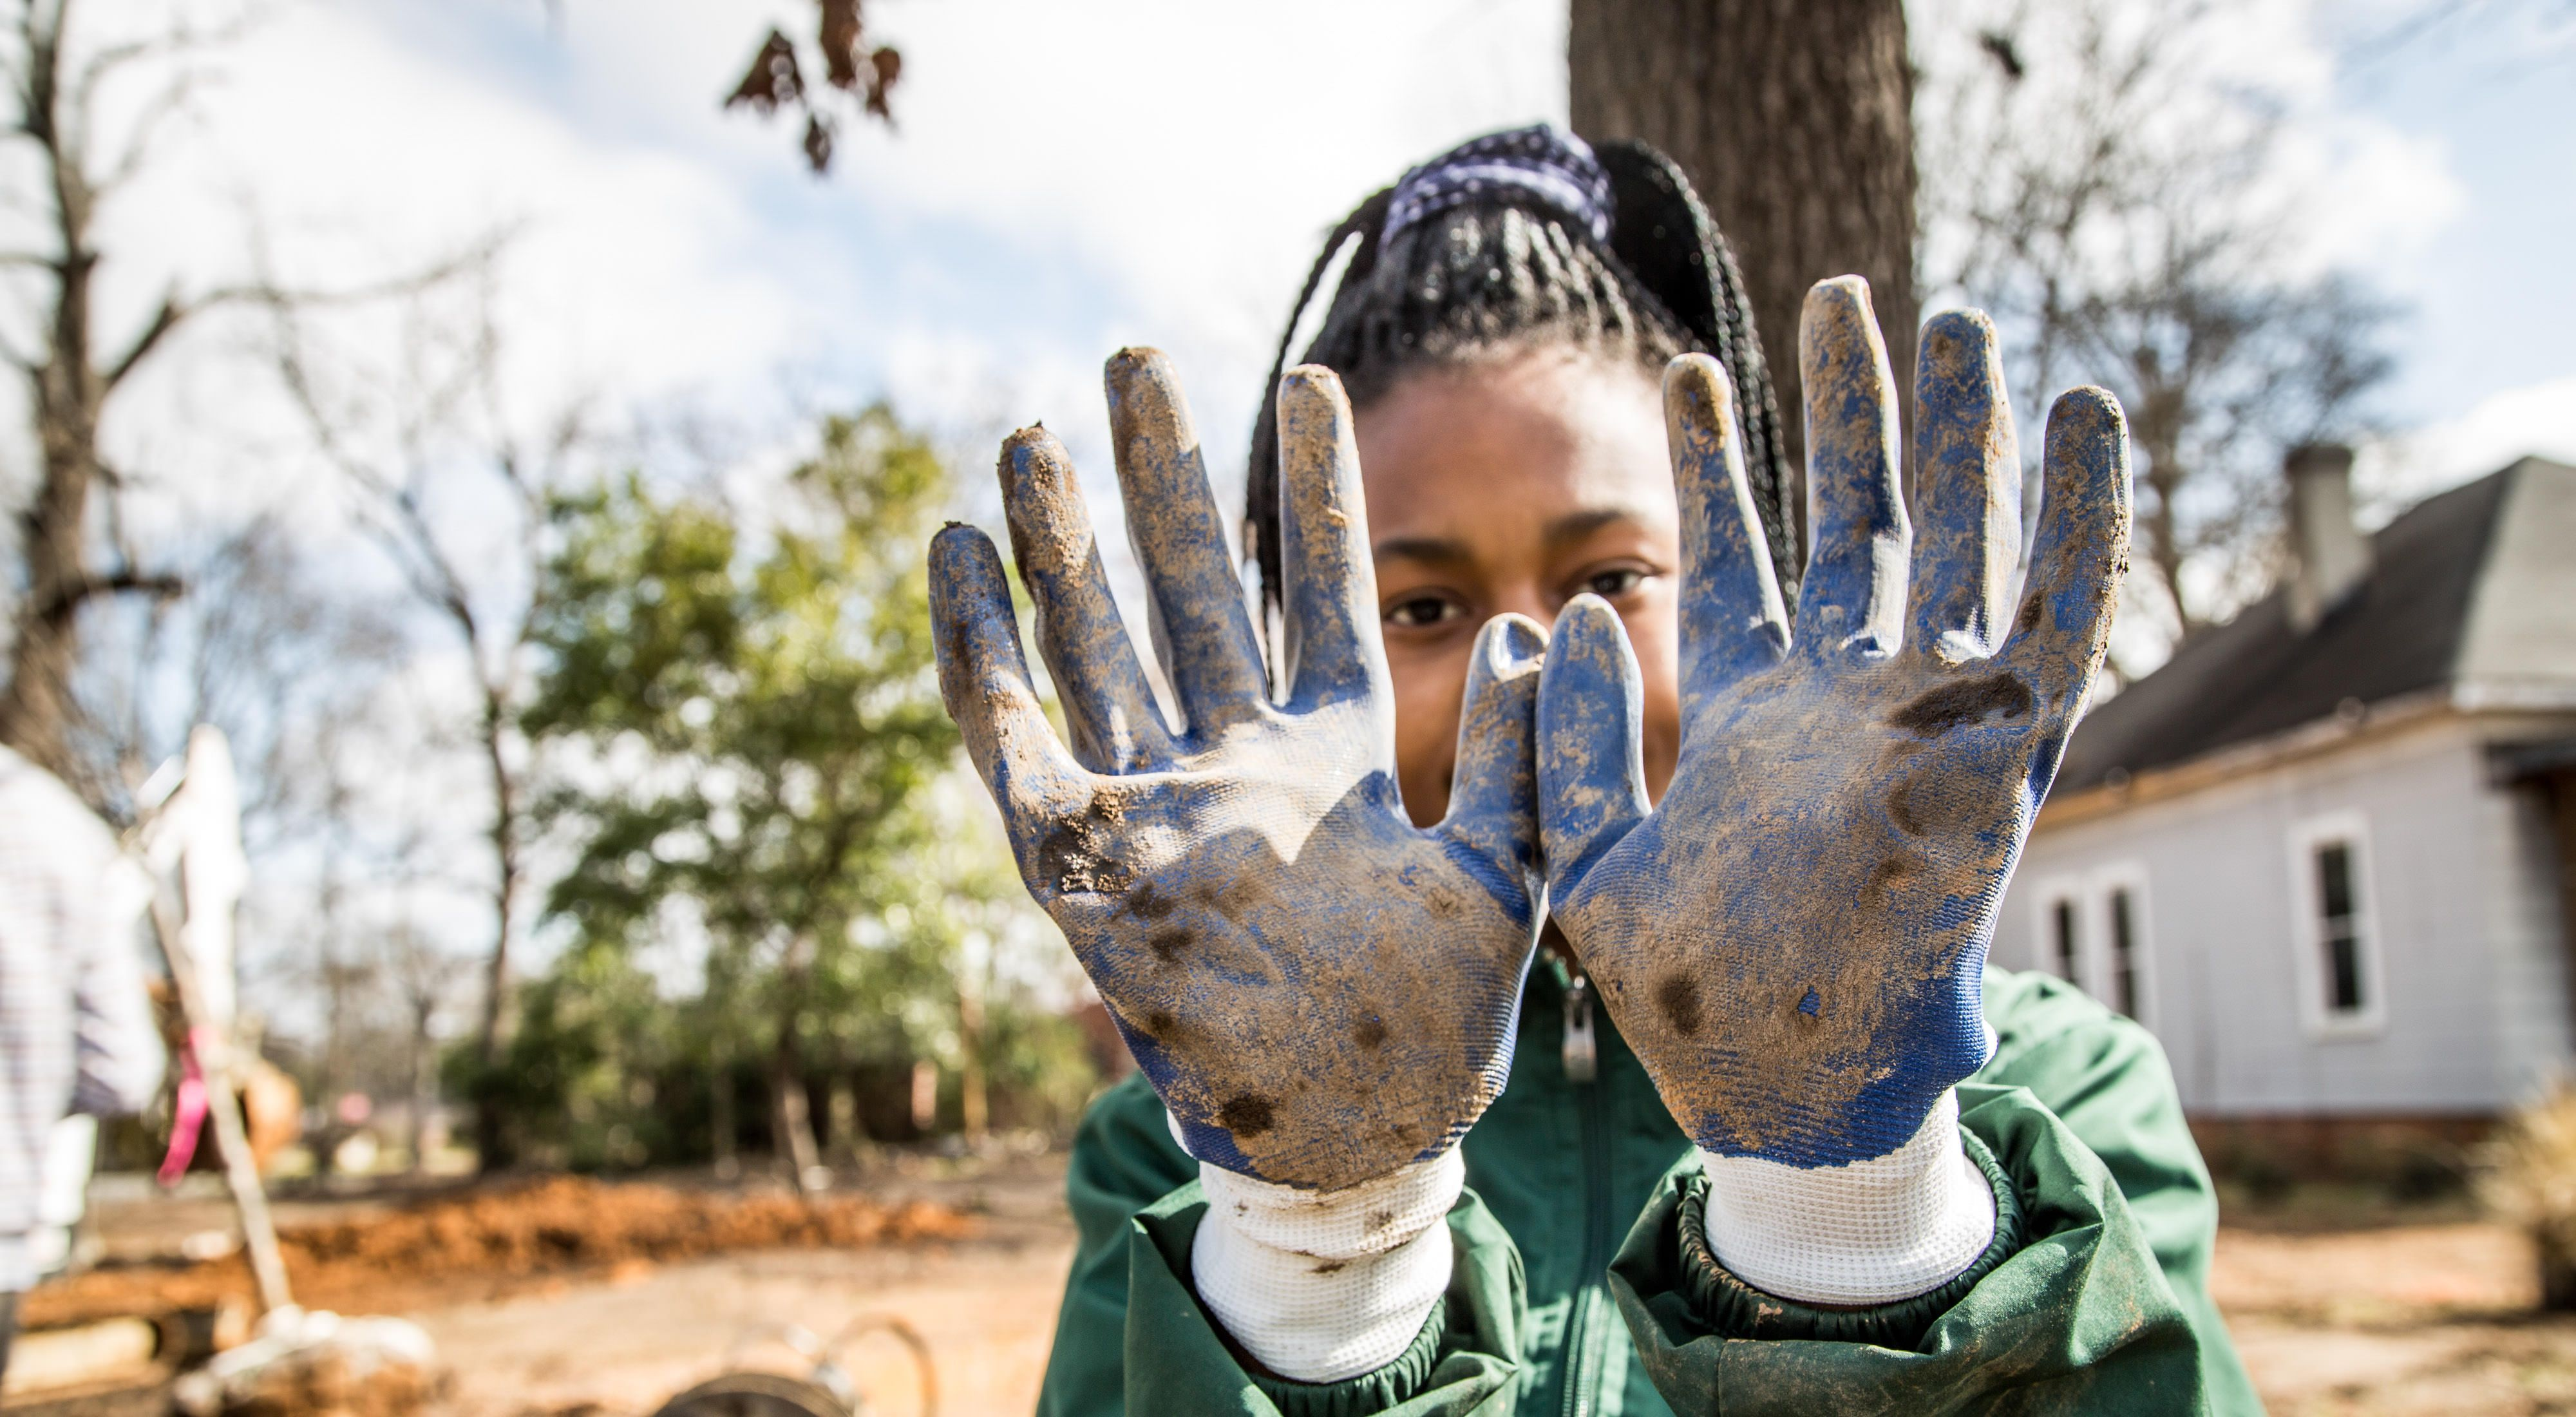 A young girl holds her gloved hands up to show off the dirt she got on them plantin trees